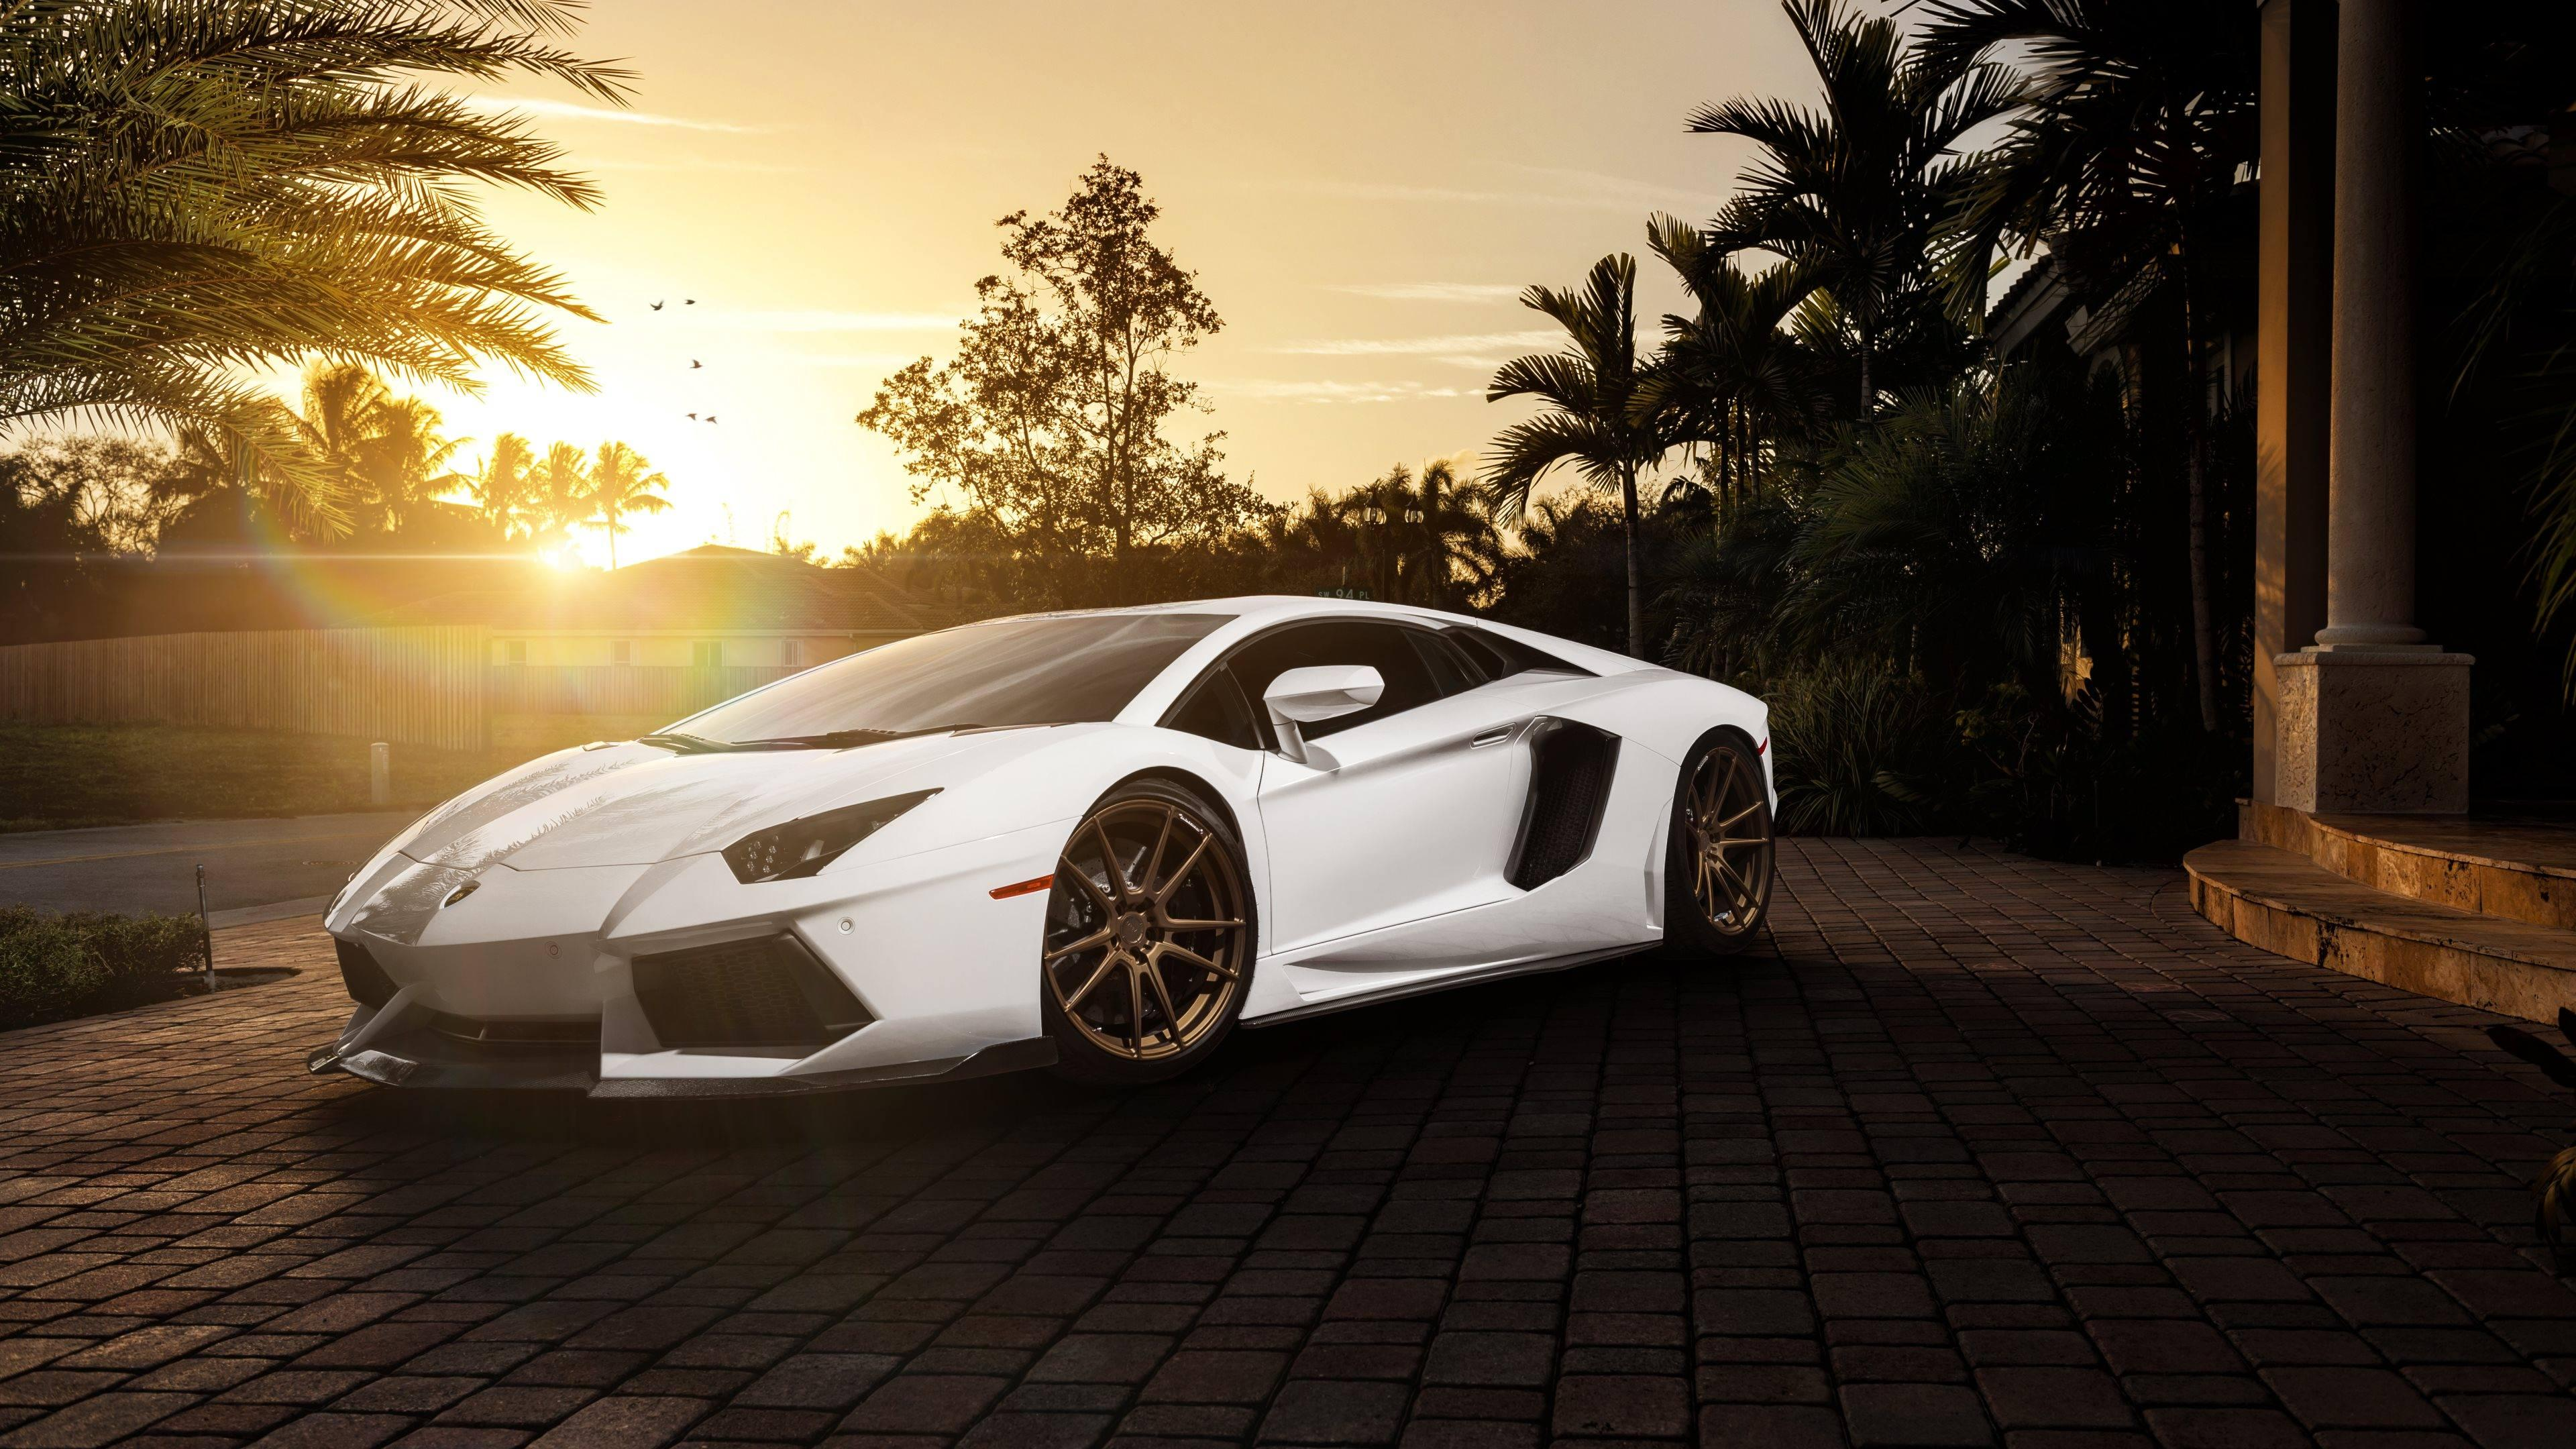 Lamborghini Aventador Ultra Hd 4k Wallpaper 3840x2160   HD Wallpapers 3840x2160